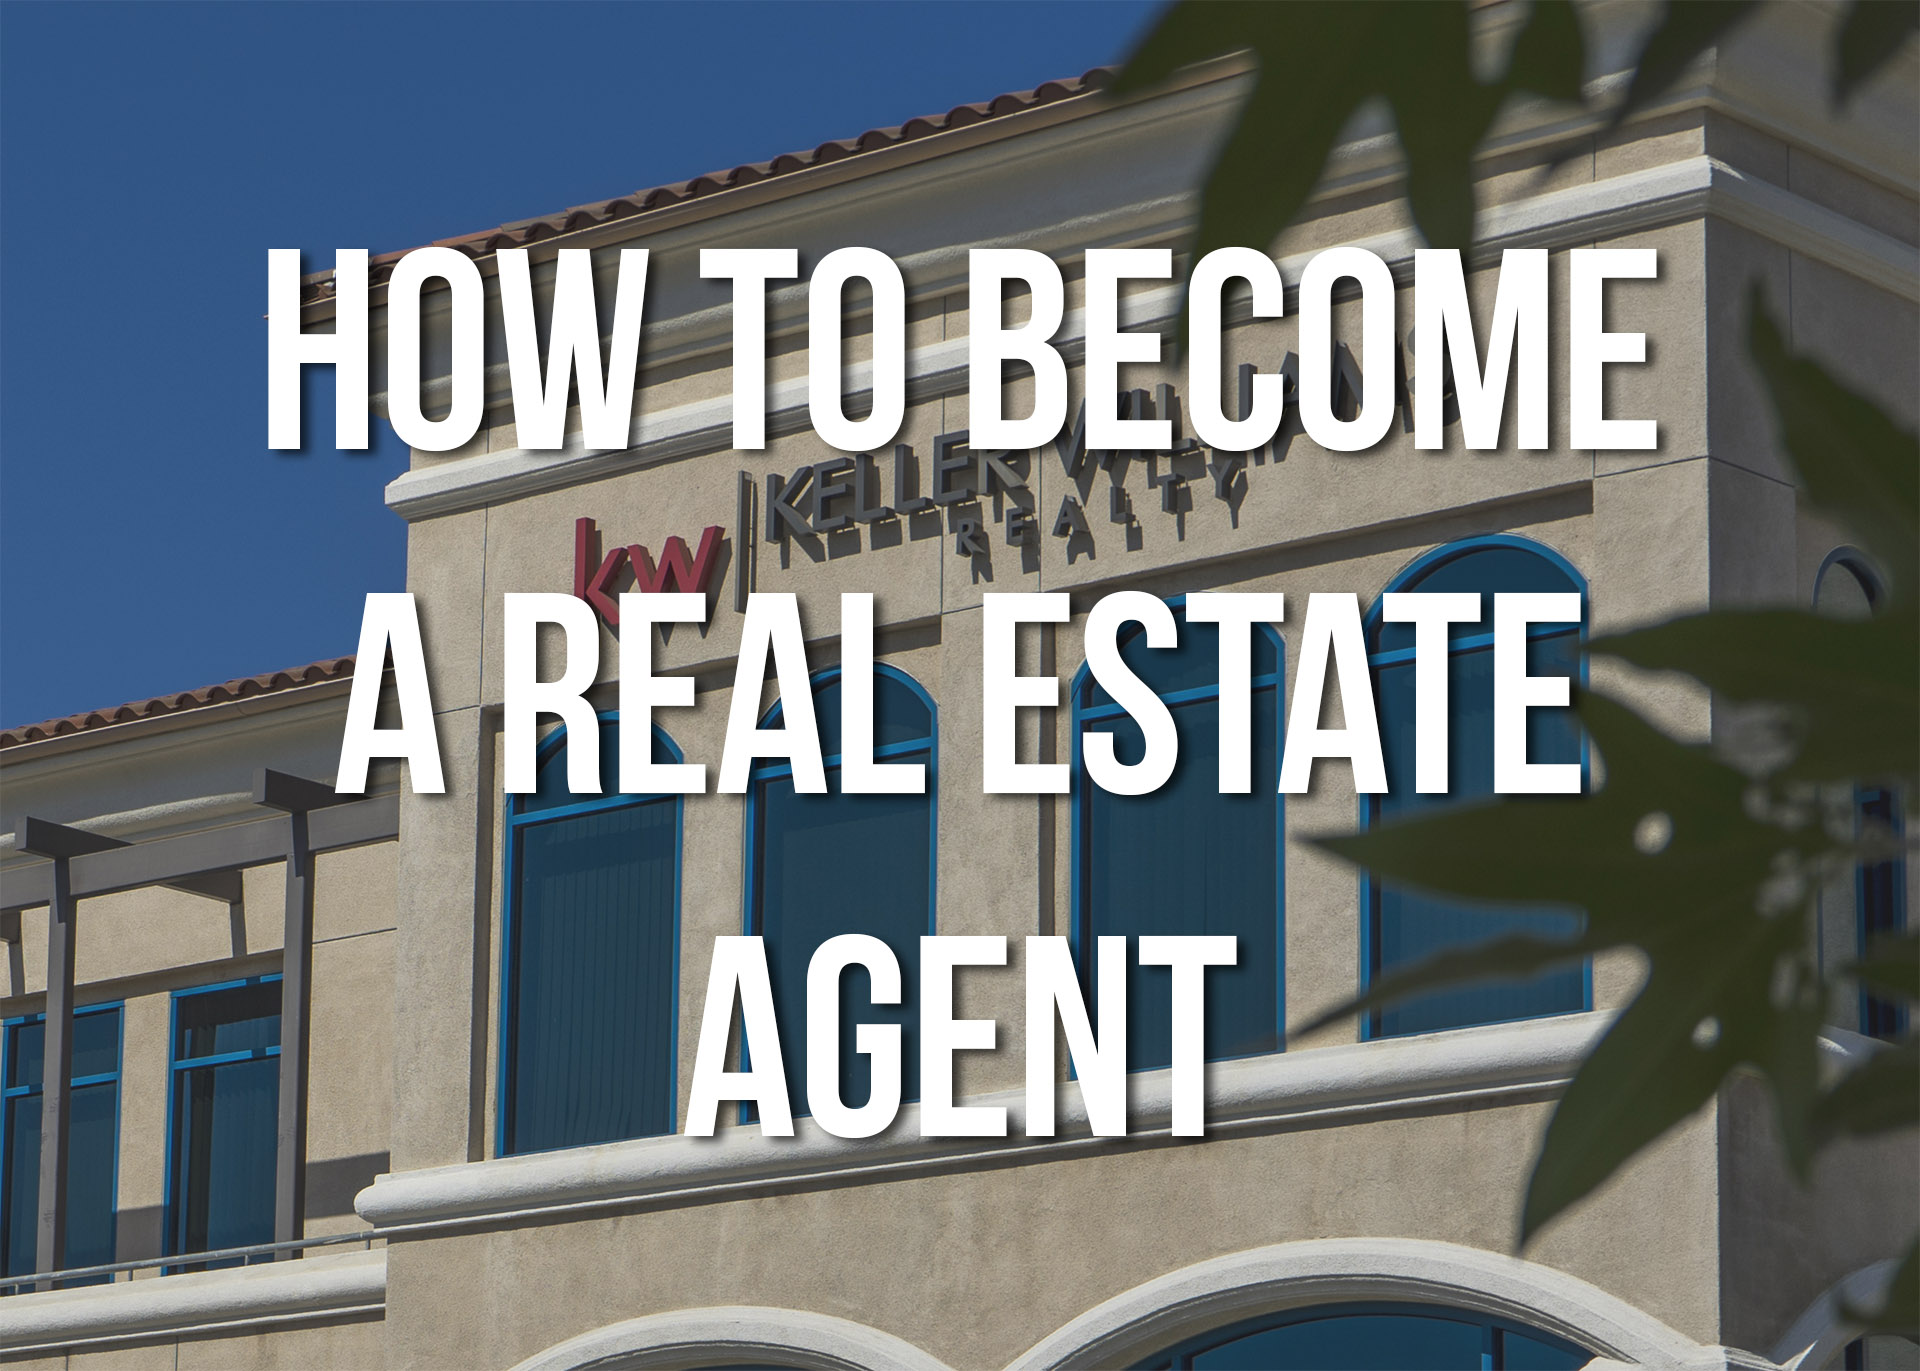 Real Estate Agent Education Requirements - The Best Education 2017